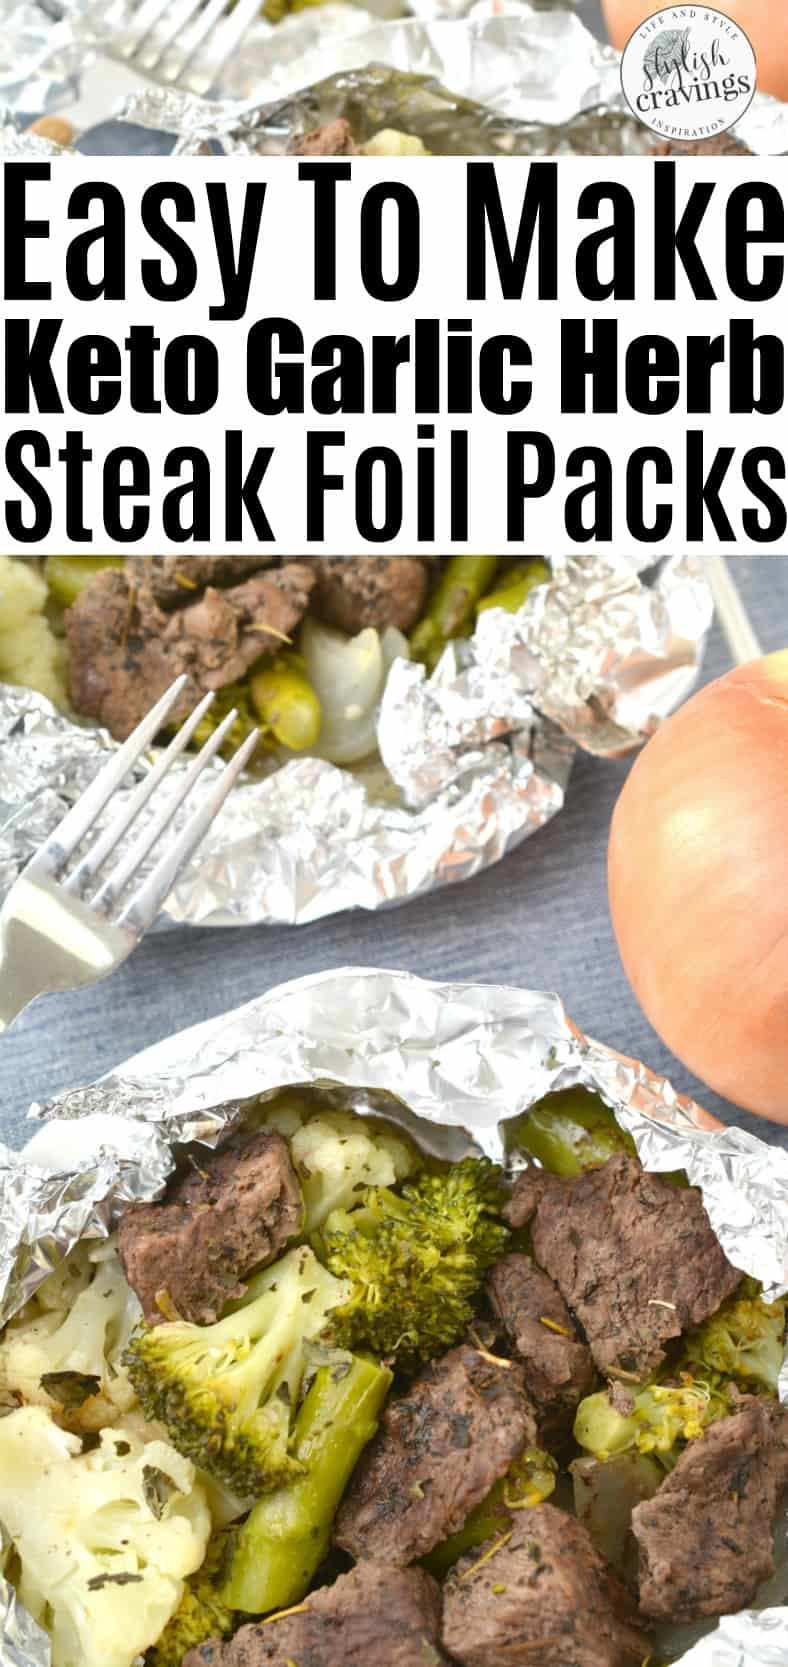 Keto Steak Foil Packets